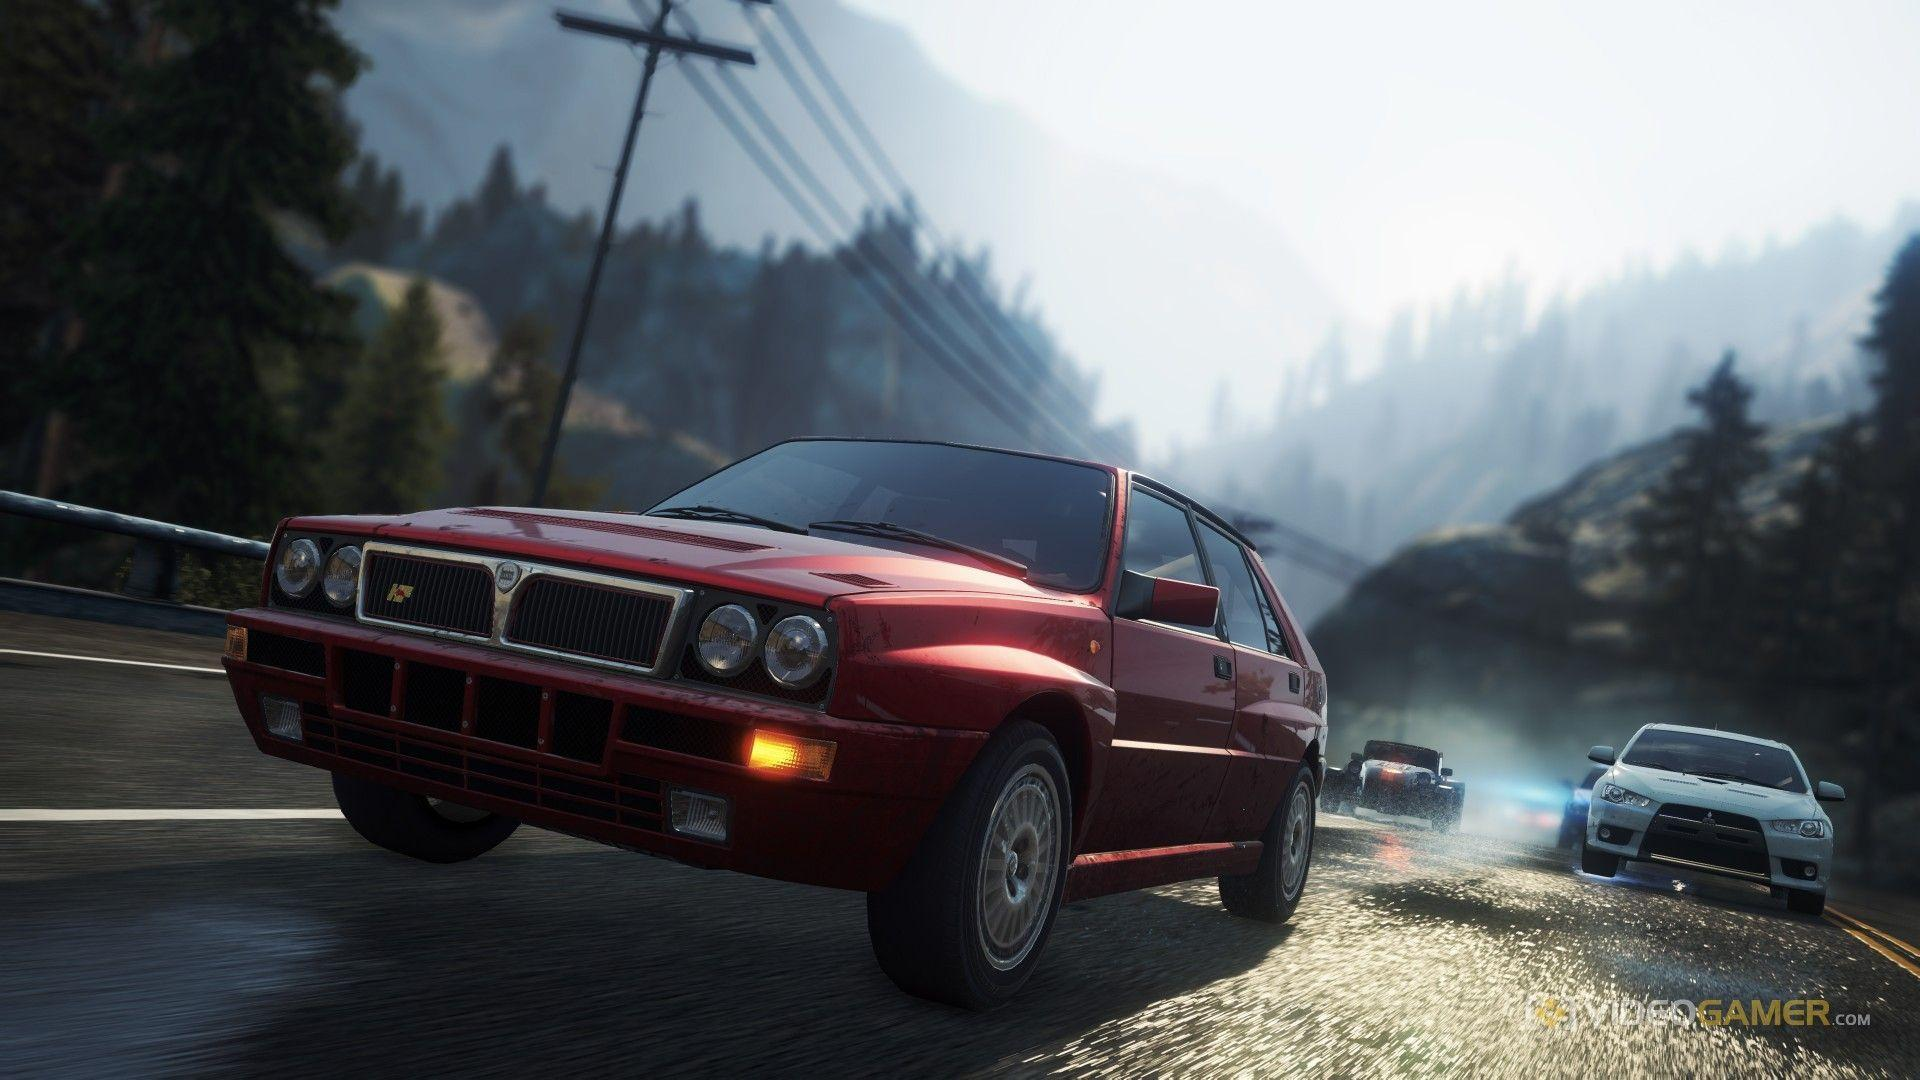 Need For Speed: Most Wanted (2012) Screenshots - VideoGamer.com